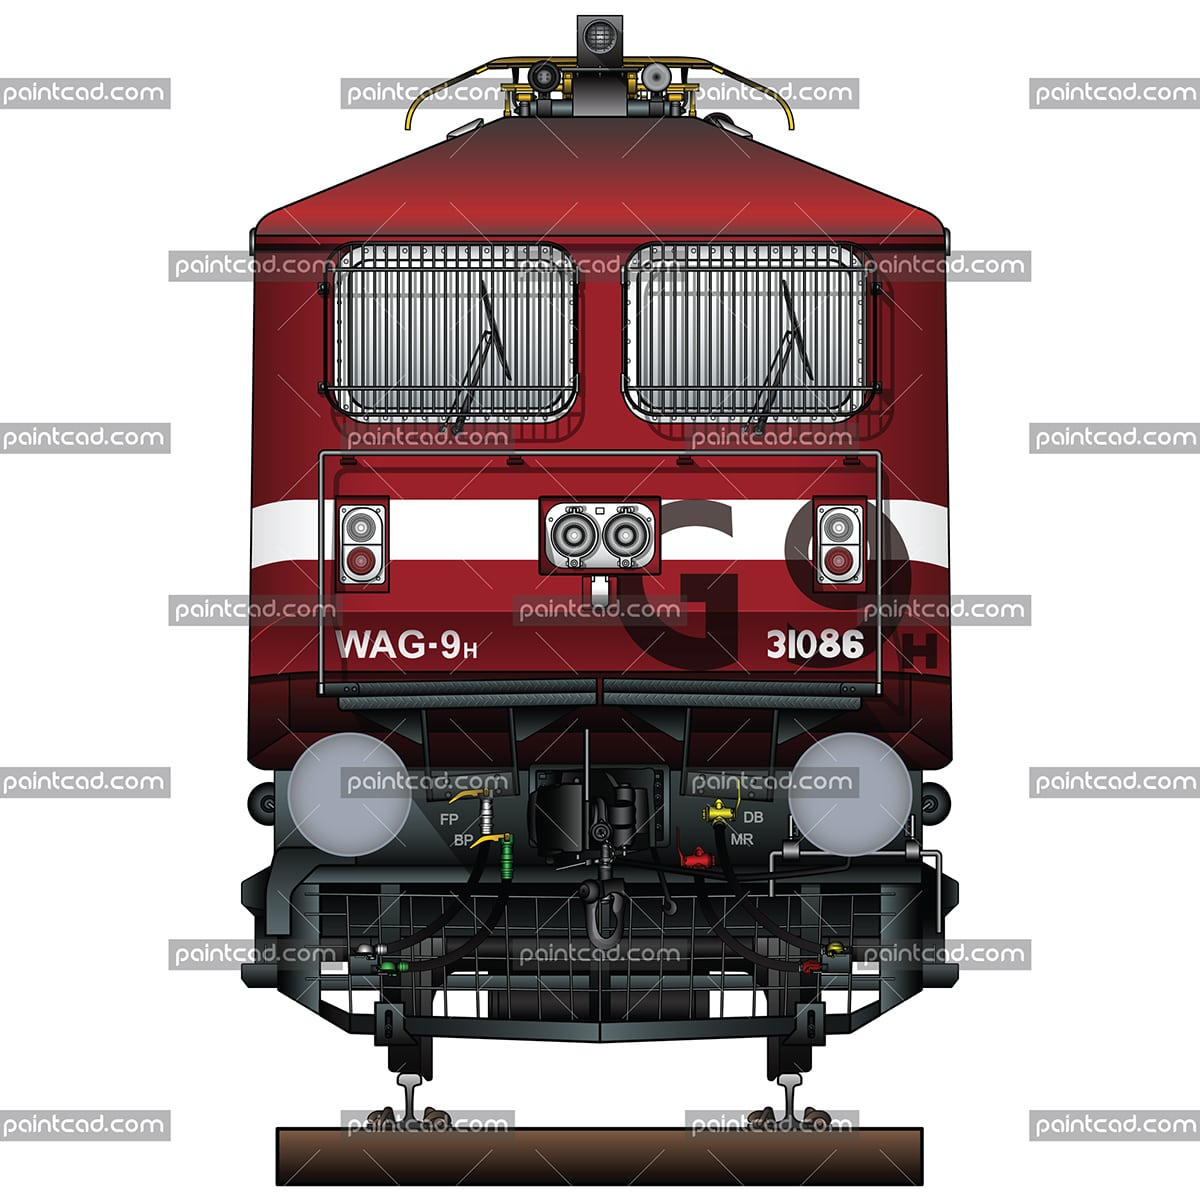 Legendary Indian locomotive WAG-9H with nickname Dr. Silver - vector illustration